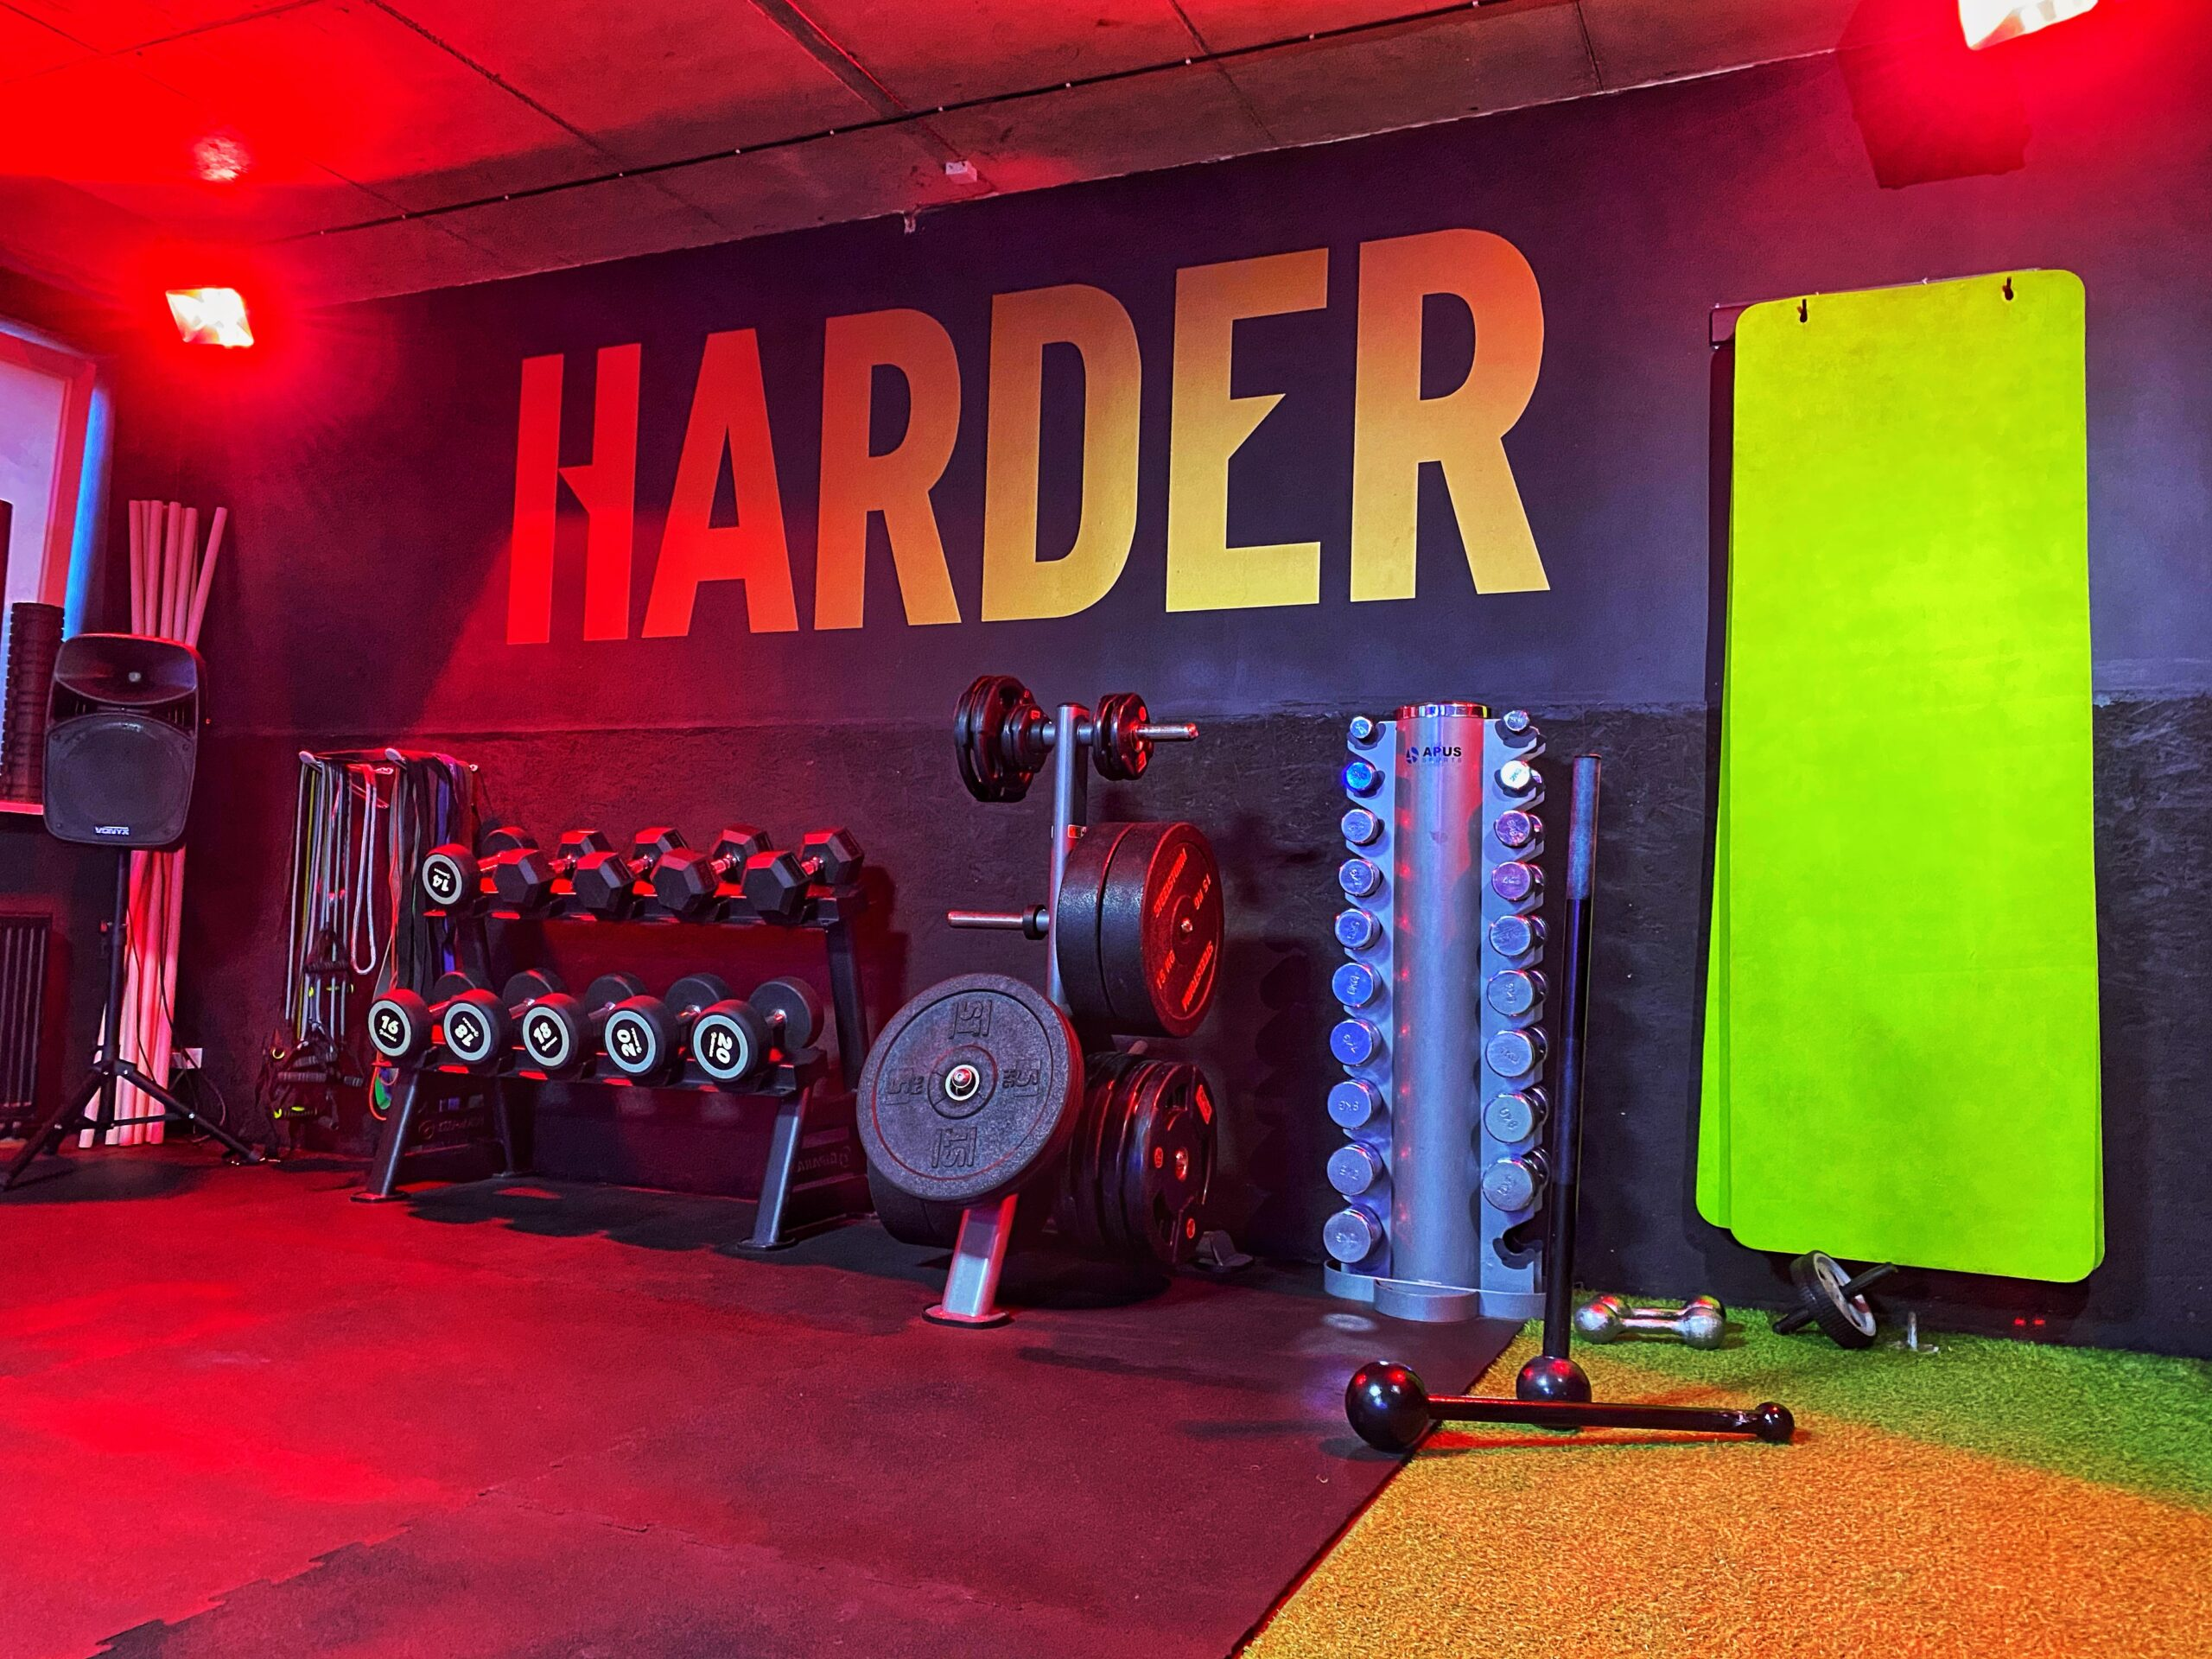 Harder, Perfect Gym mobile app